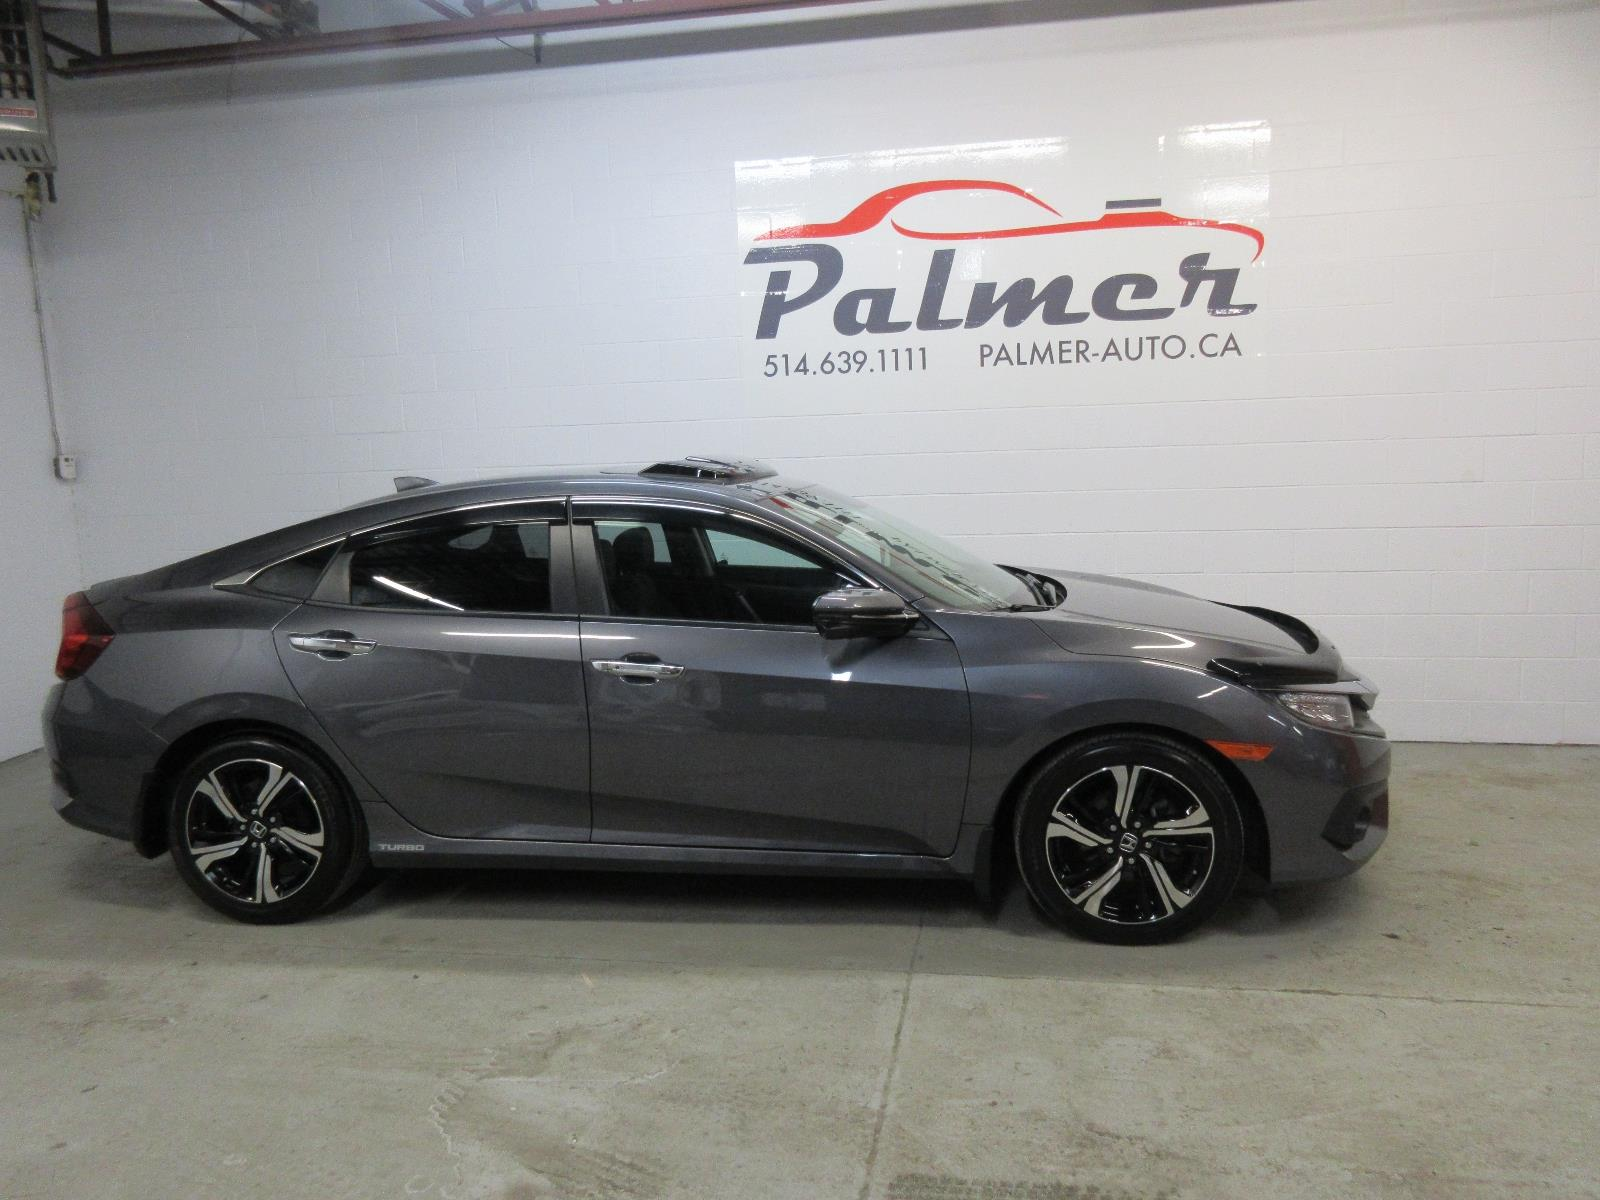 Honda Civic Sedan 2016 4dr CVT Touring #18531